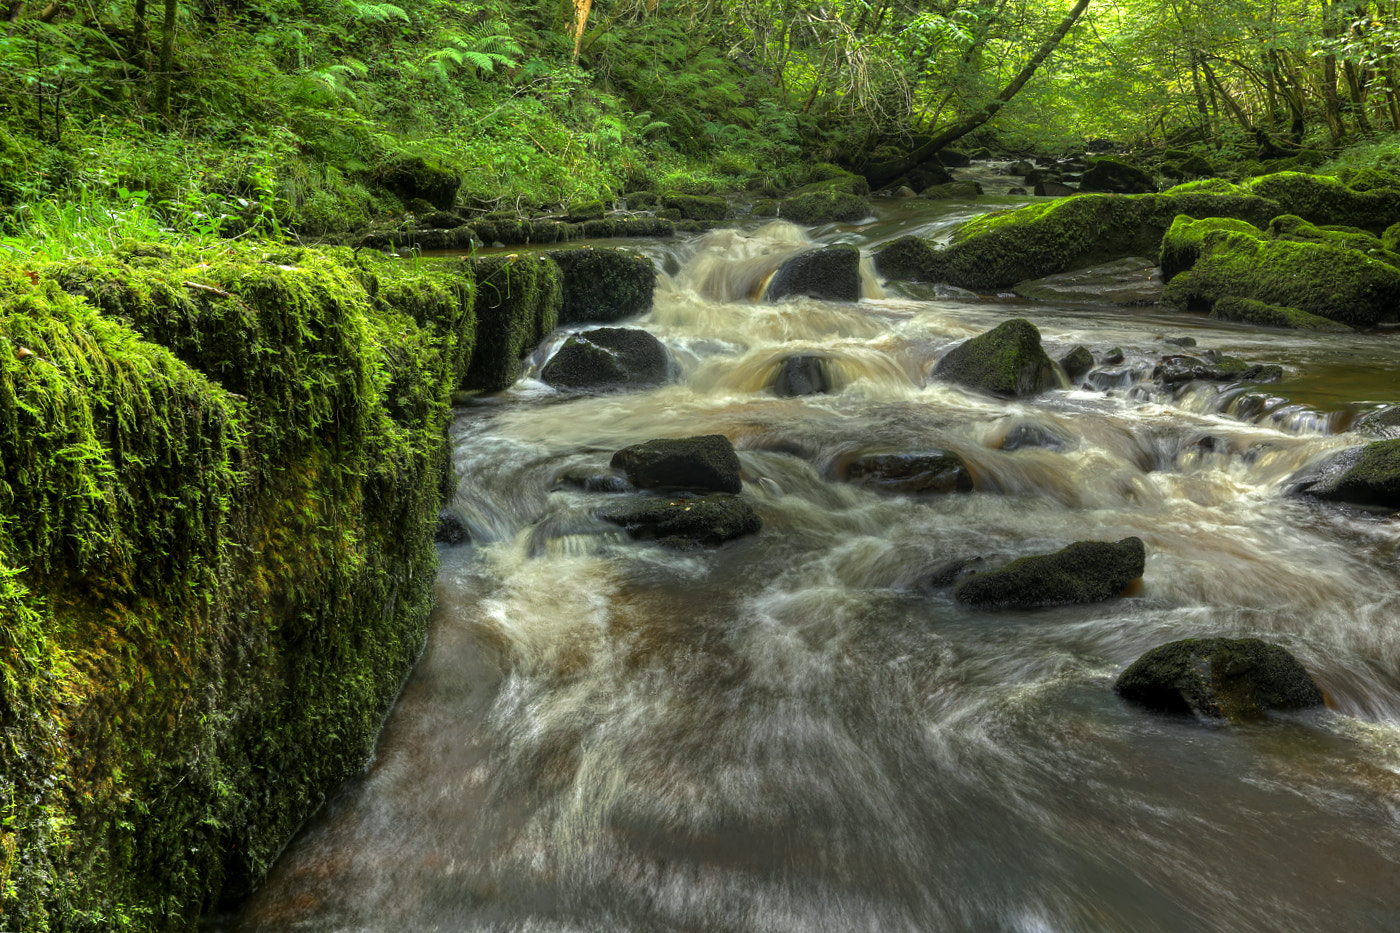 Photograph A River Runs Through it by Alan Coles on 500px